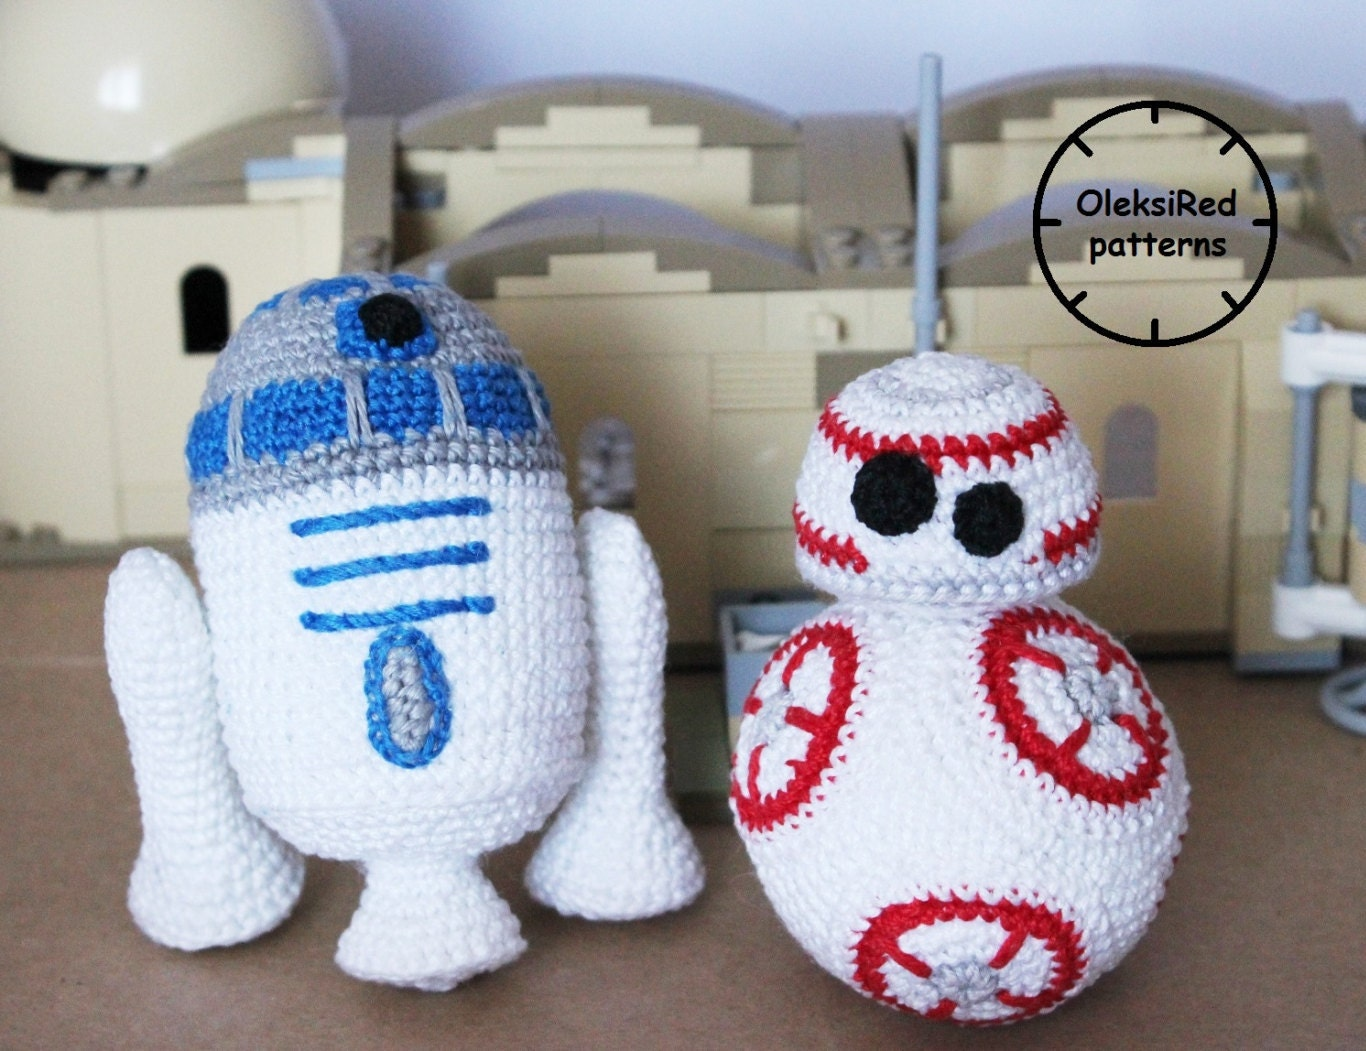 Free Star Wars Crochet Amigurumi Patterns : Star Wars CROCHET PATTERNS characters BB8 and R2D2